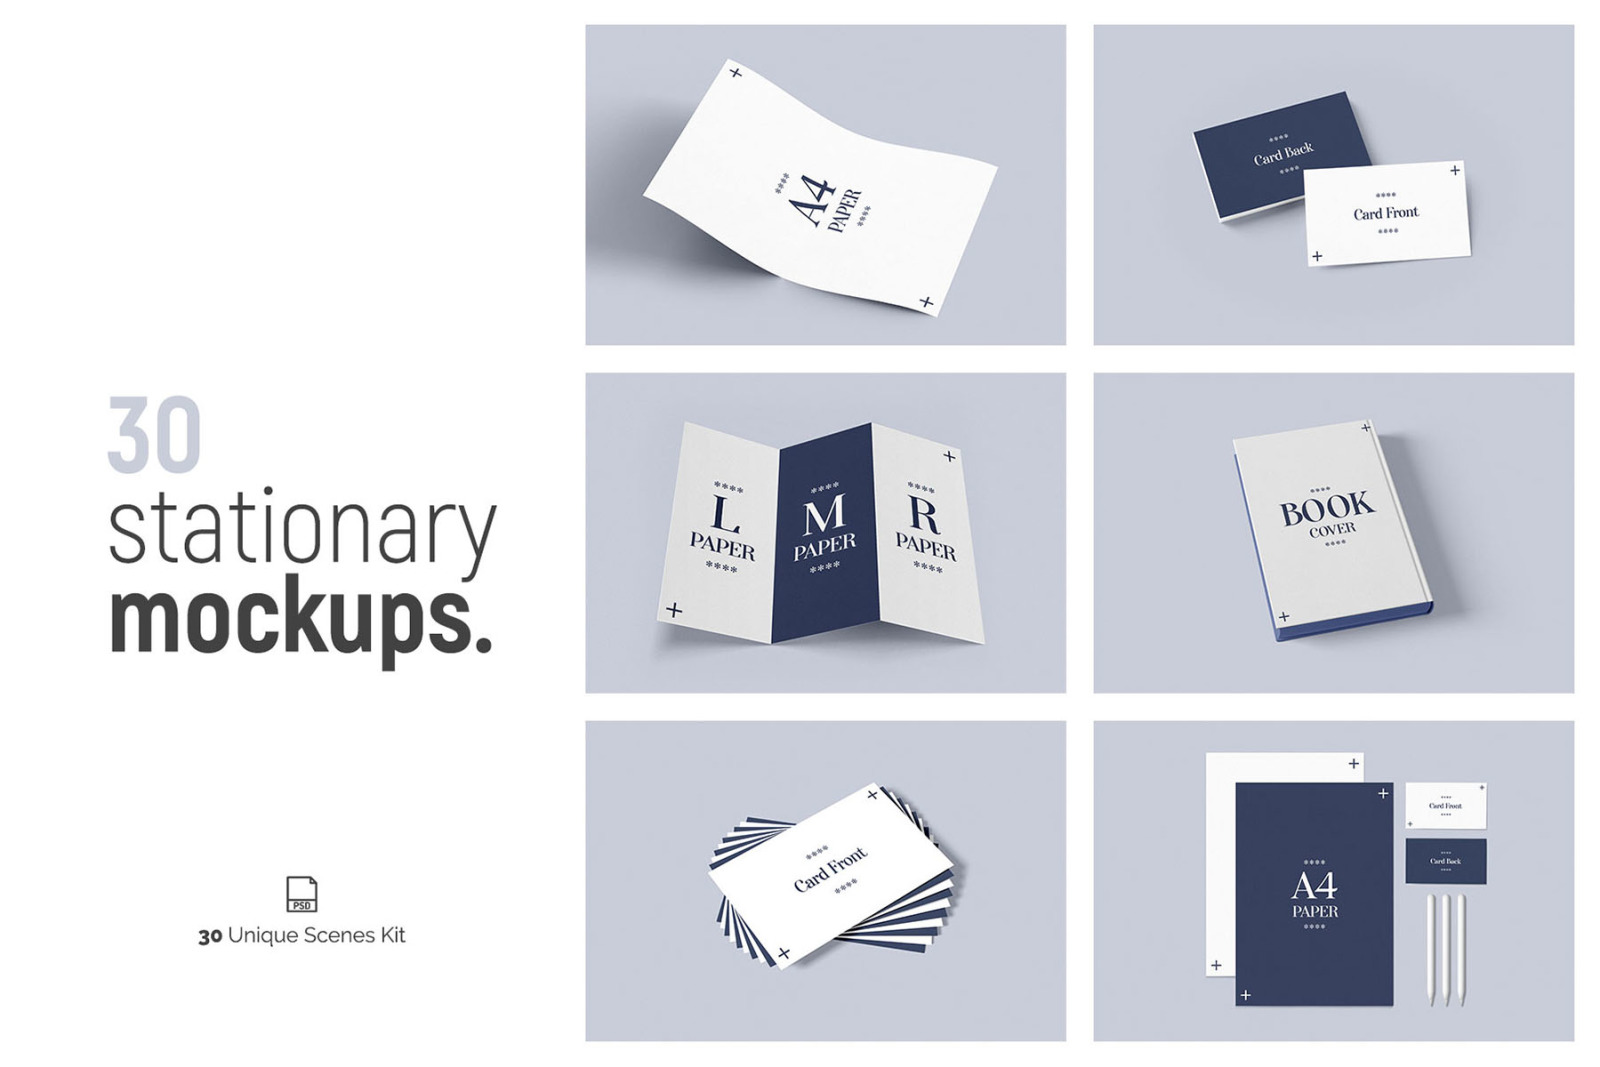 30 Stationery Mockups In Stationery Mockups On Yellow Images